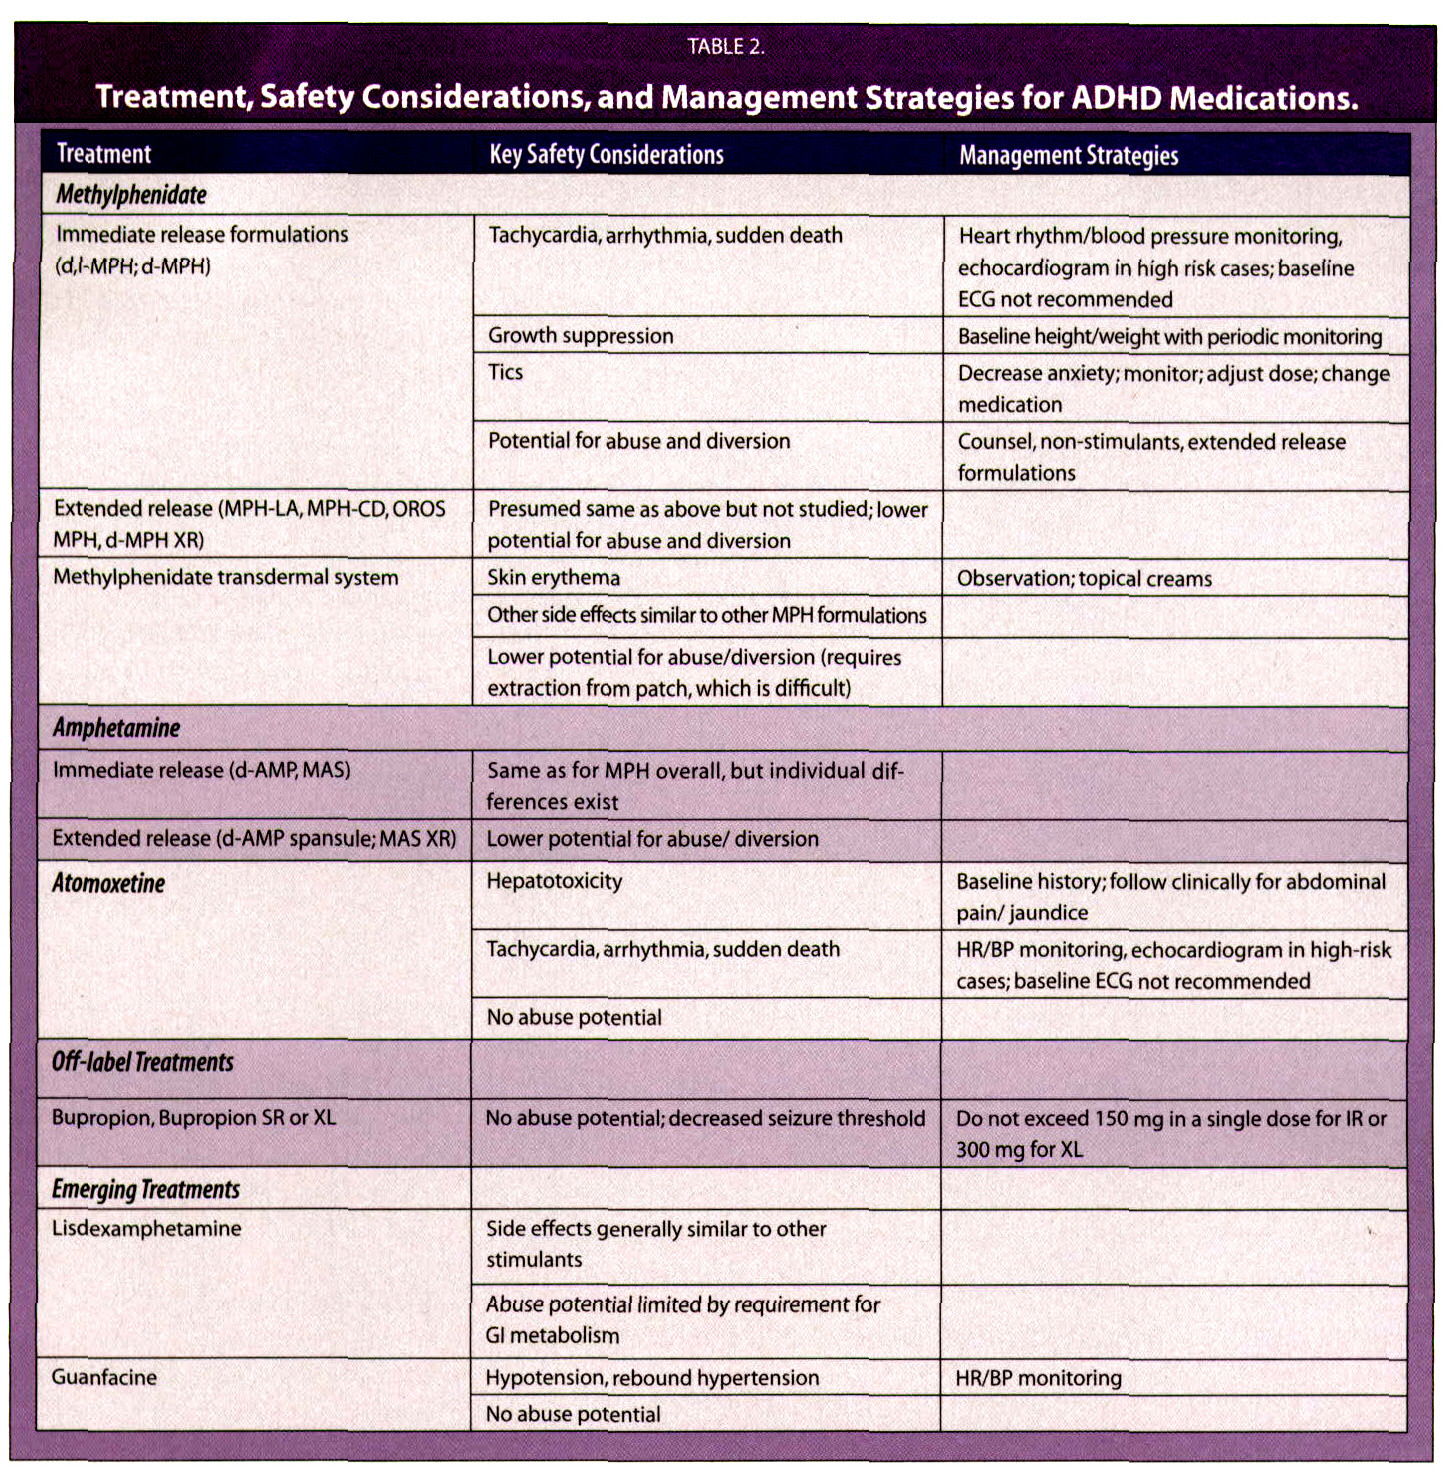 TABLE 2.Treatment, Safety Considerations, and Management Strategies for ADHD Medications.